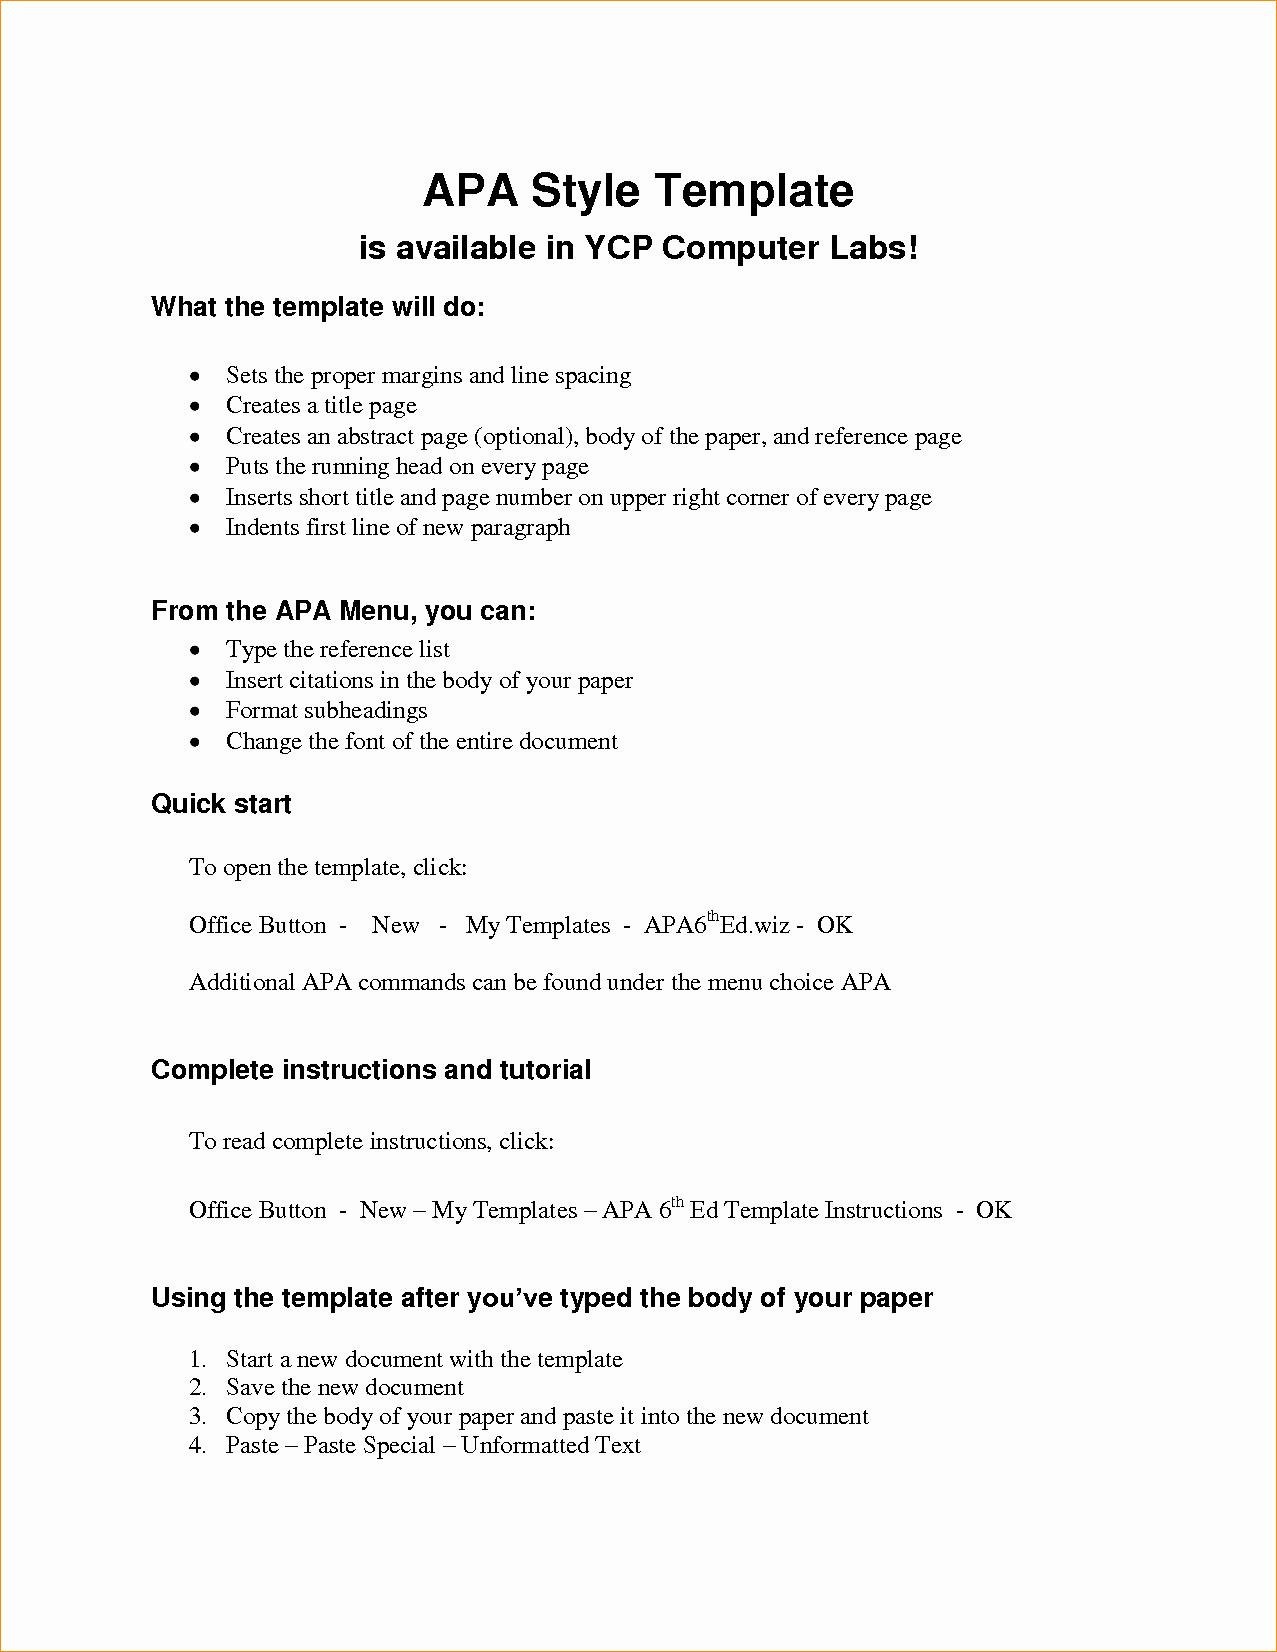 016 Research Paper Cover Letter Apa Style Template Awesome Beautiful Format For Resume Best Fresh Fascinating Full